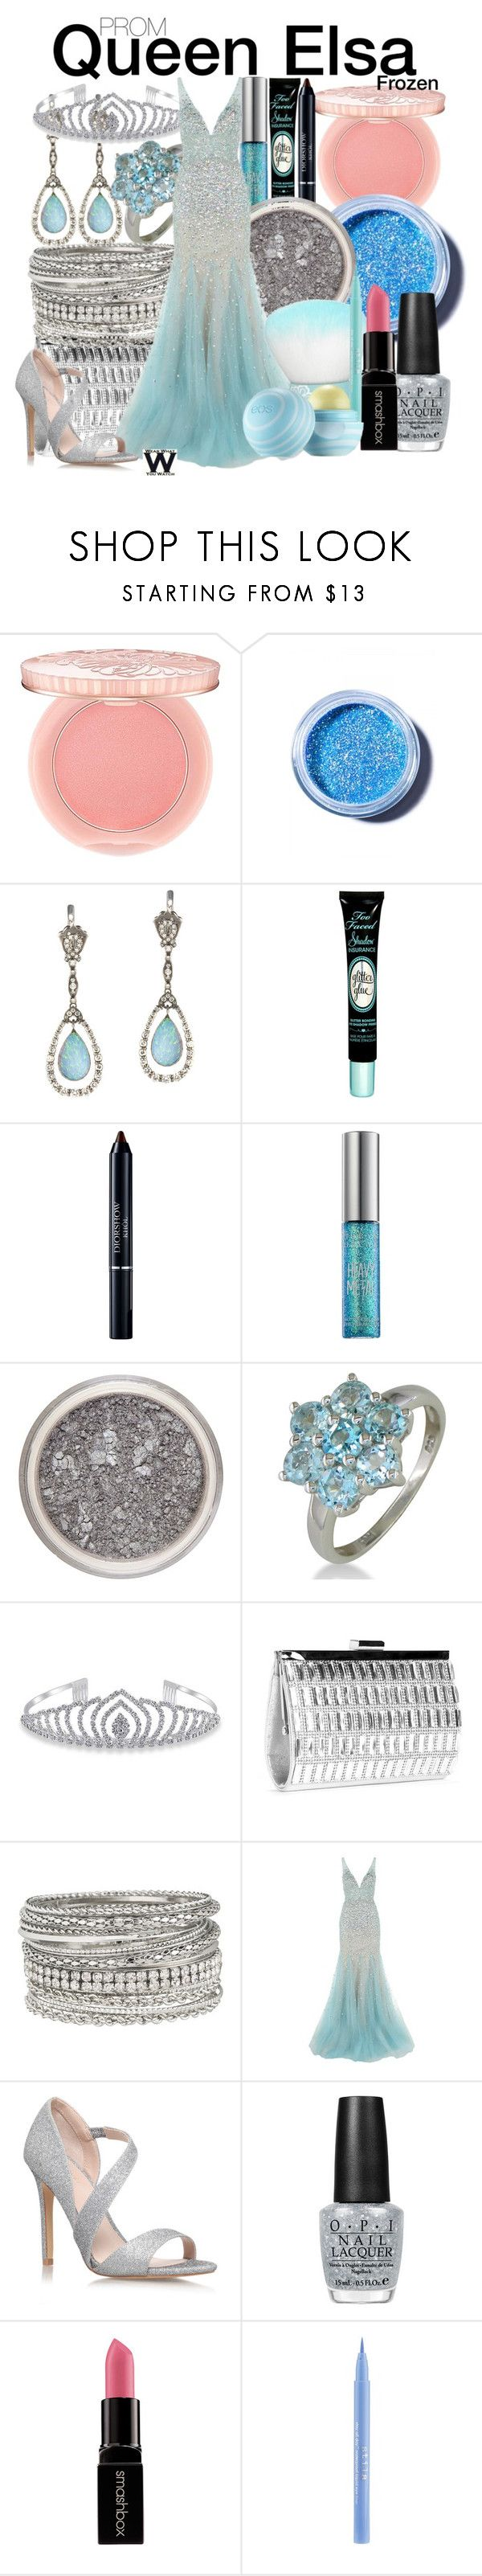 """Frozen"" by wearwhatyouwatch ❤ liked on Polyvore featuring Paul & Joe, Lime Crime, Queensbee, Too Faced Cosmetics, Christian Dior, Urban Decay, Bling Jewelry, maurices, Jovani and Carvela Kurt Geiger"